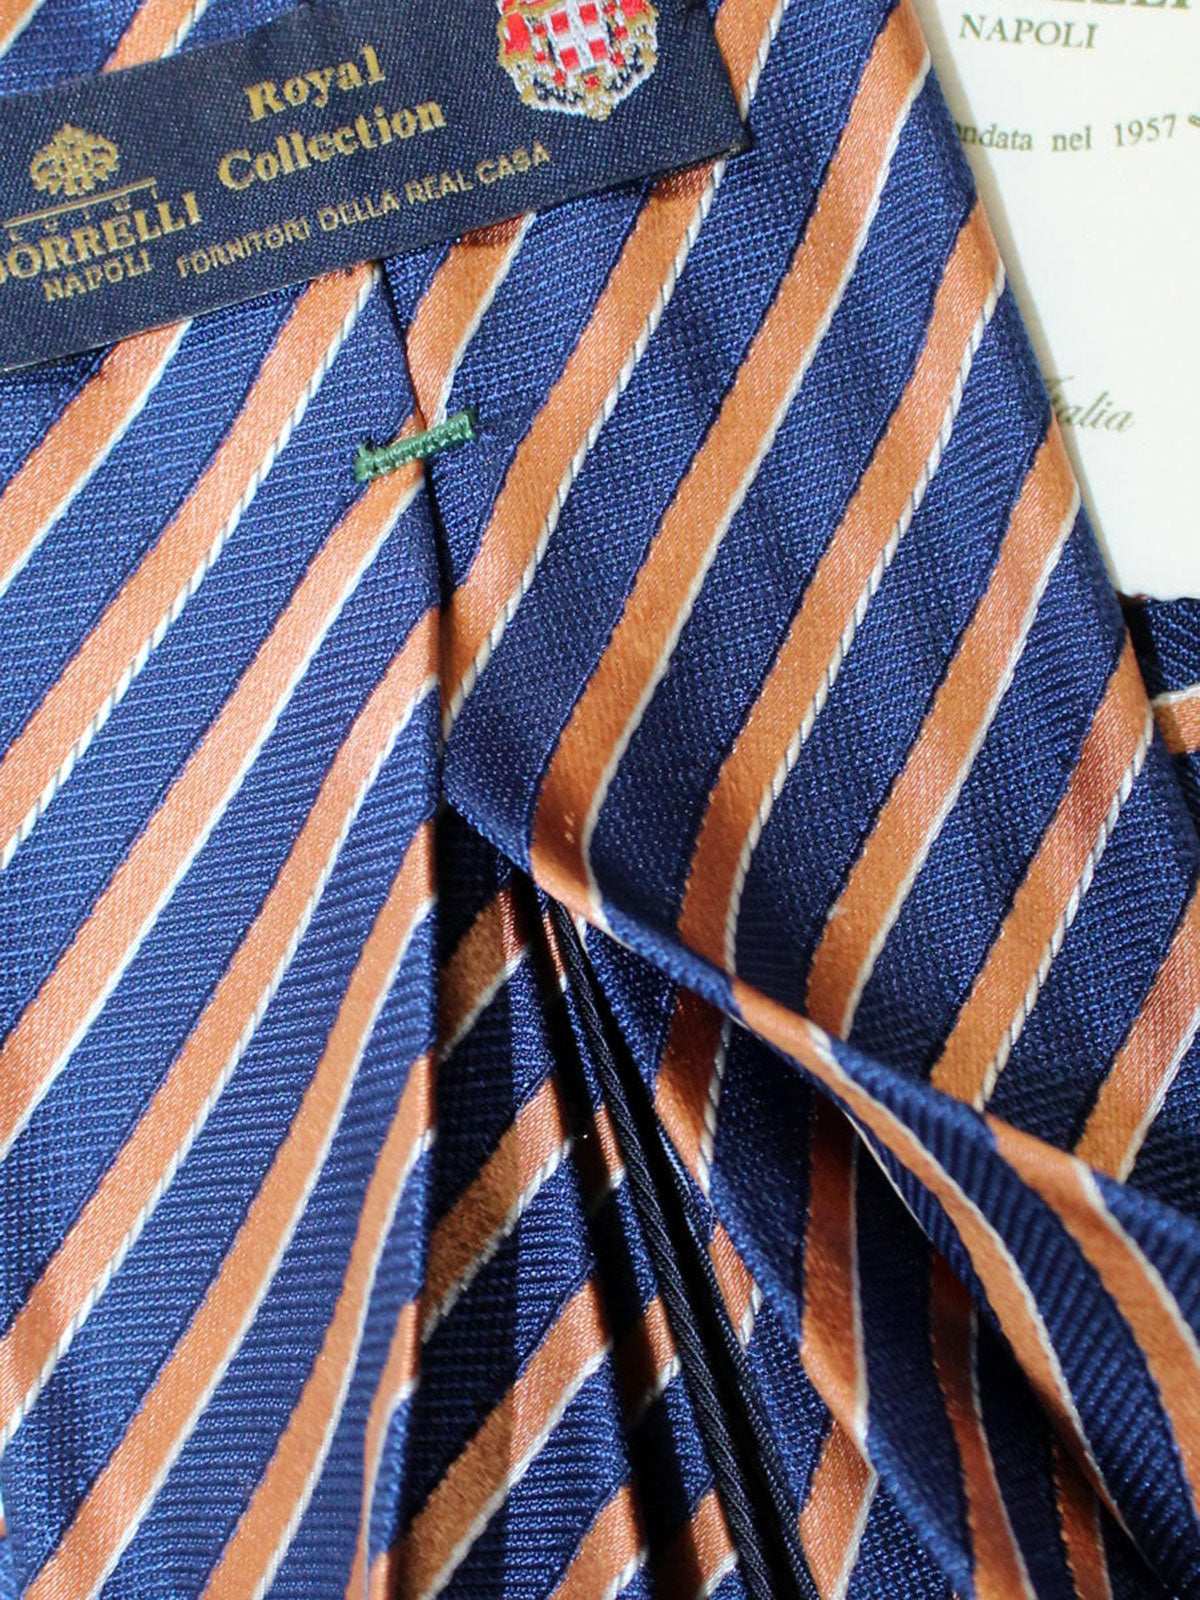 Luigi Borrelli 11 Fold Tie Navy Peach Stripes ROYAL COLLECTION